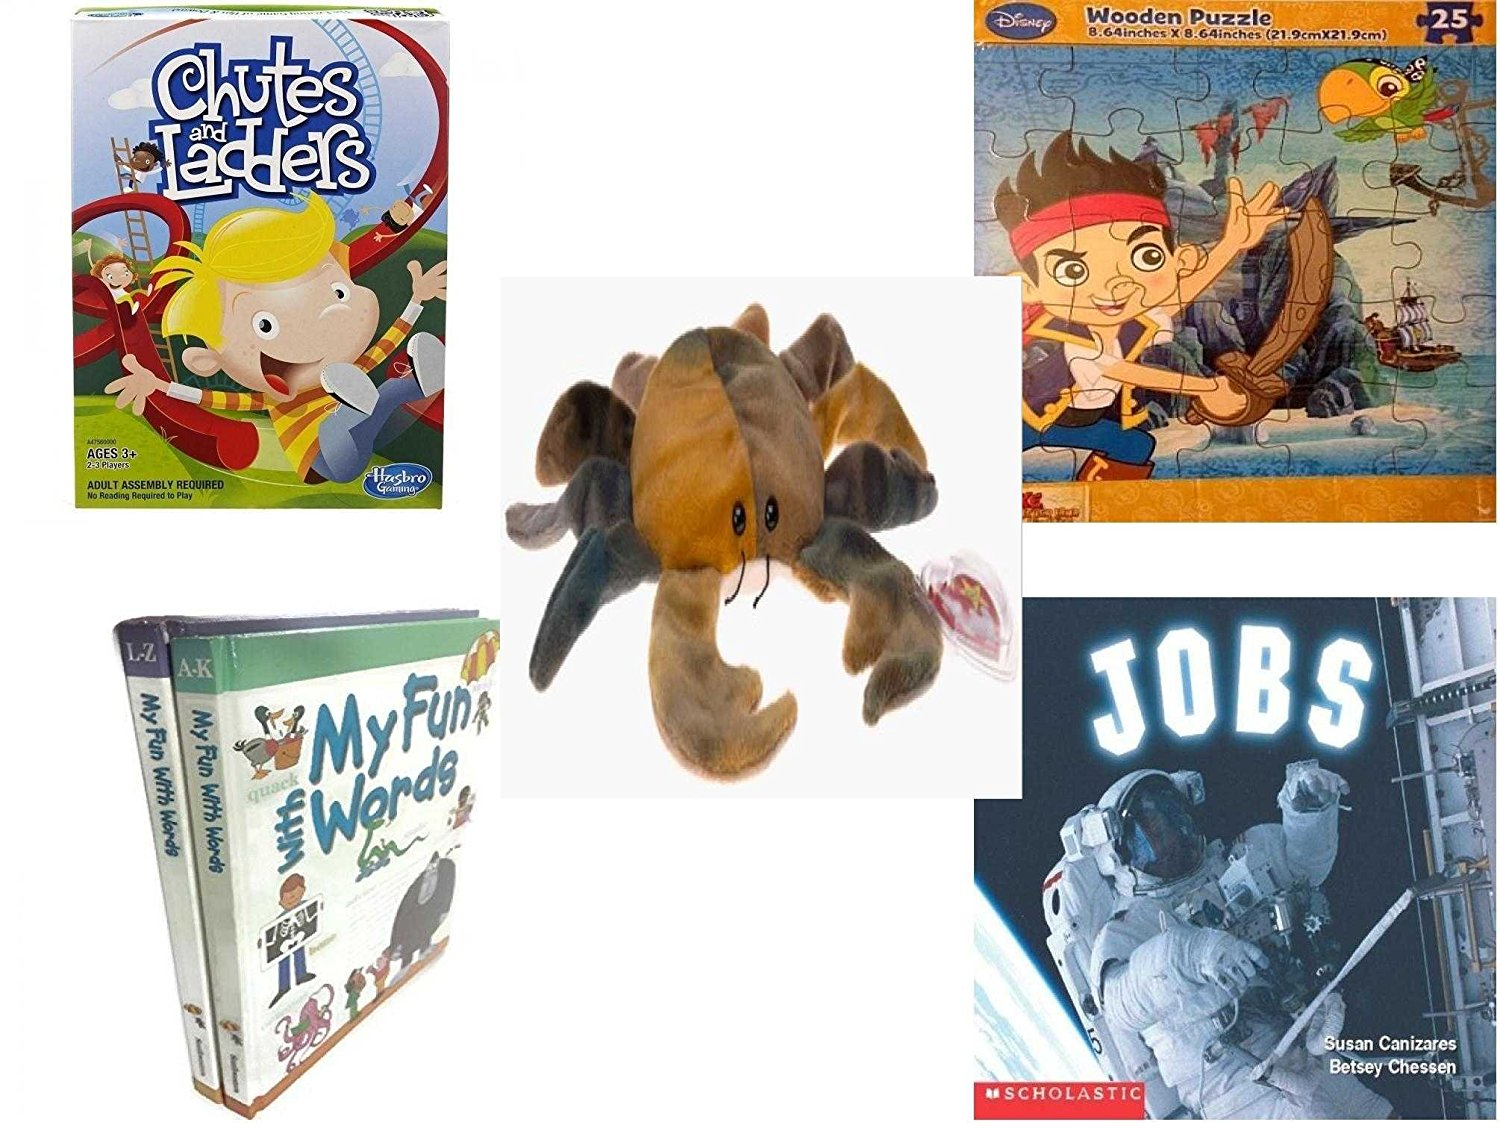 Children's Gift Bundle - Ages 3-5 [5 Piece] - Chutes and Ladders Game - Disney Jake and The Never Land Pirates Puzzle Toy - Ty Beanie Baby - Claude the Crab Ty Dye - My Fun With Words Dictionary Boo